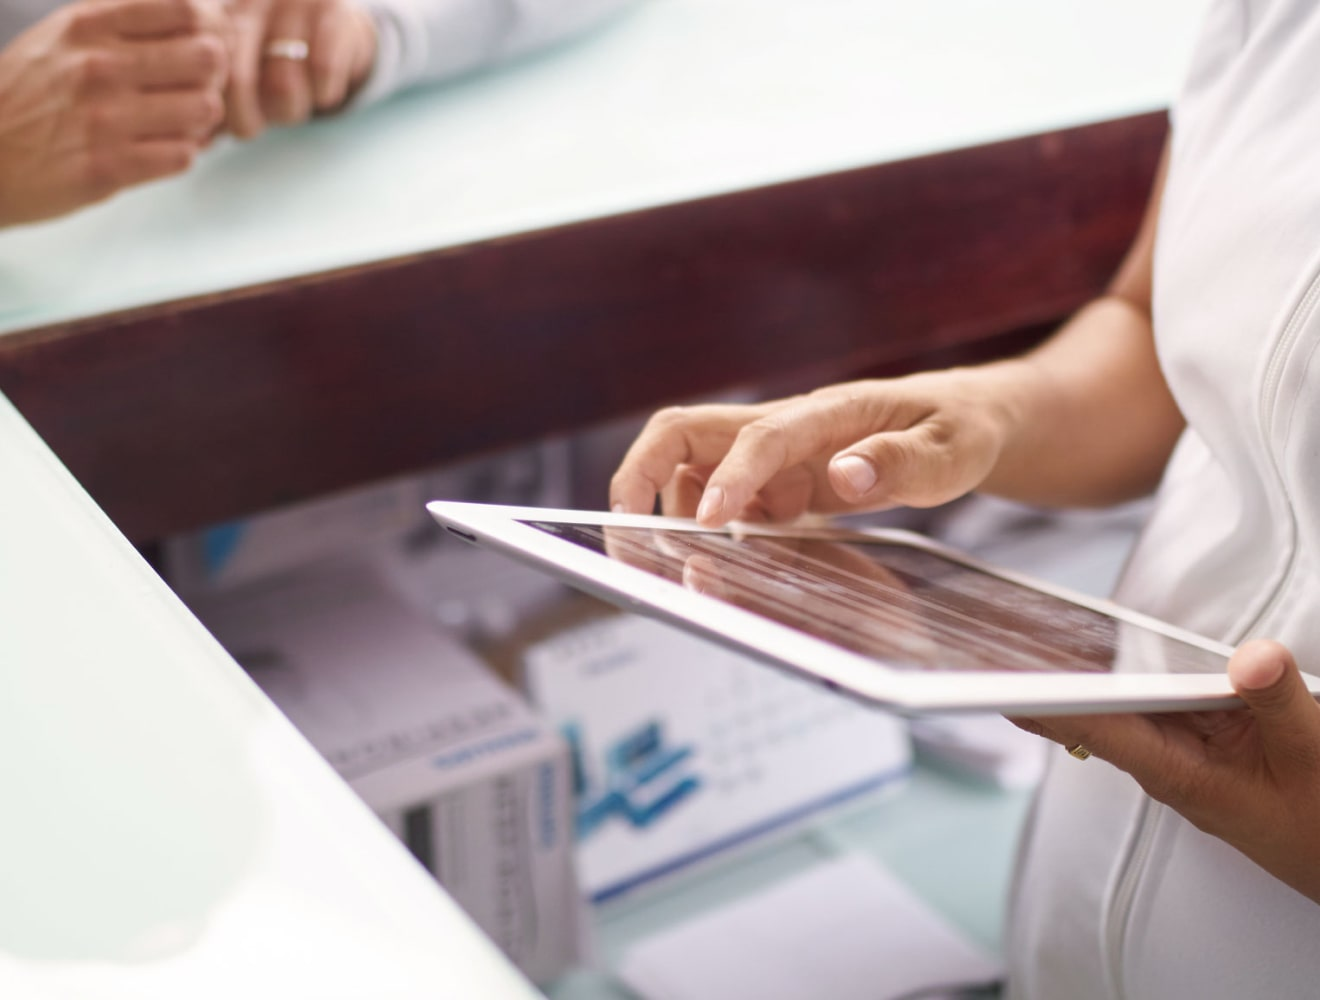 Person holding tablet